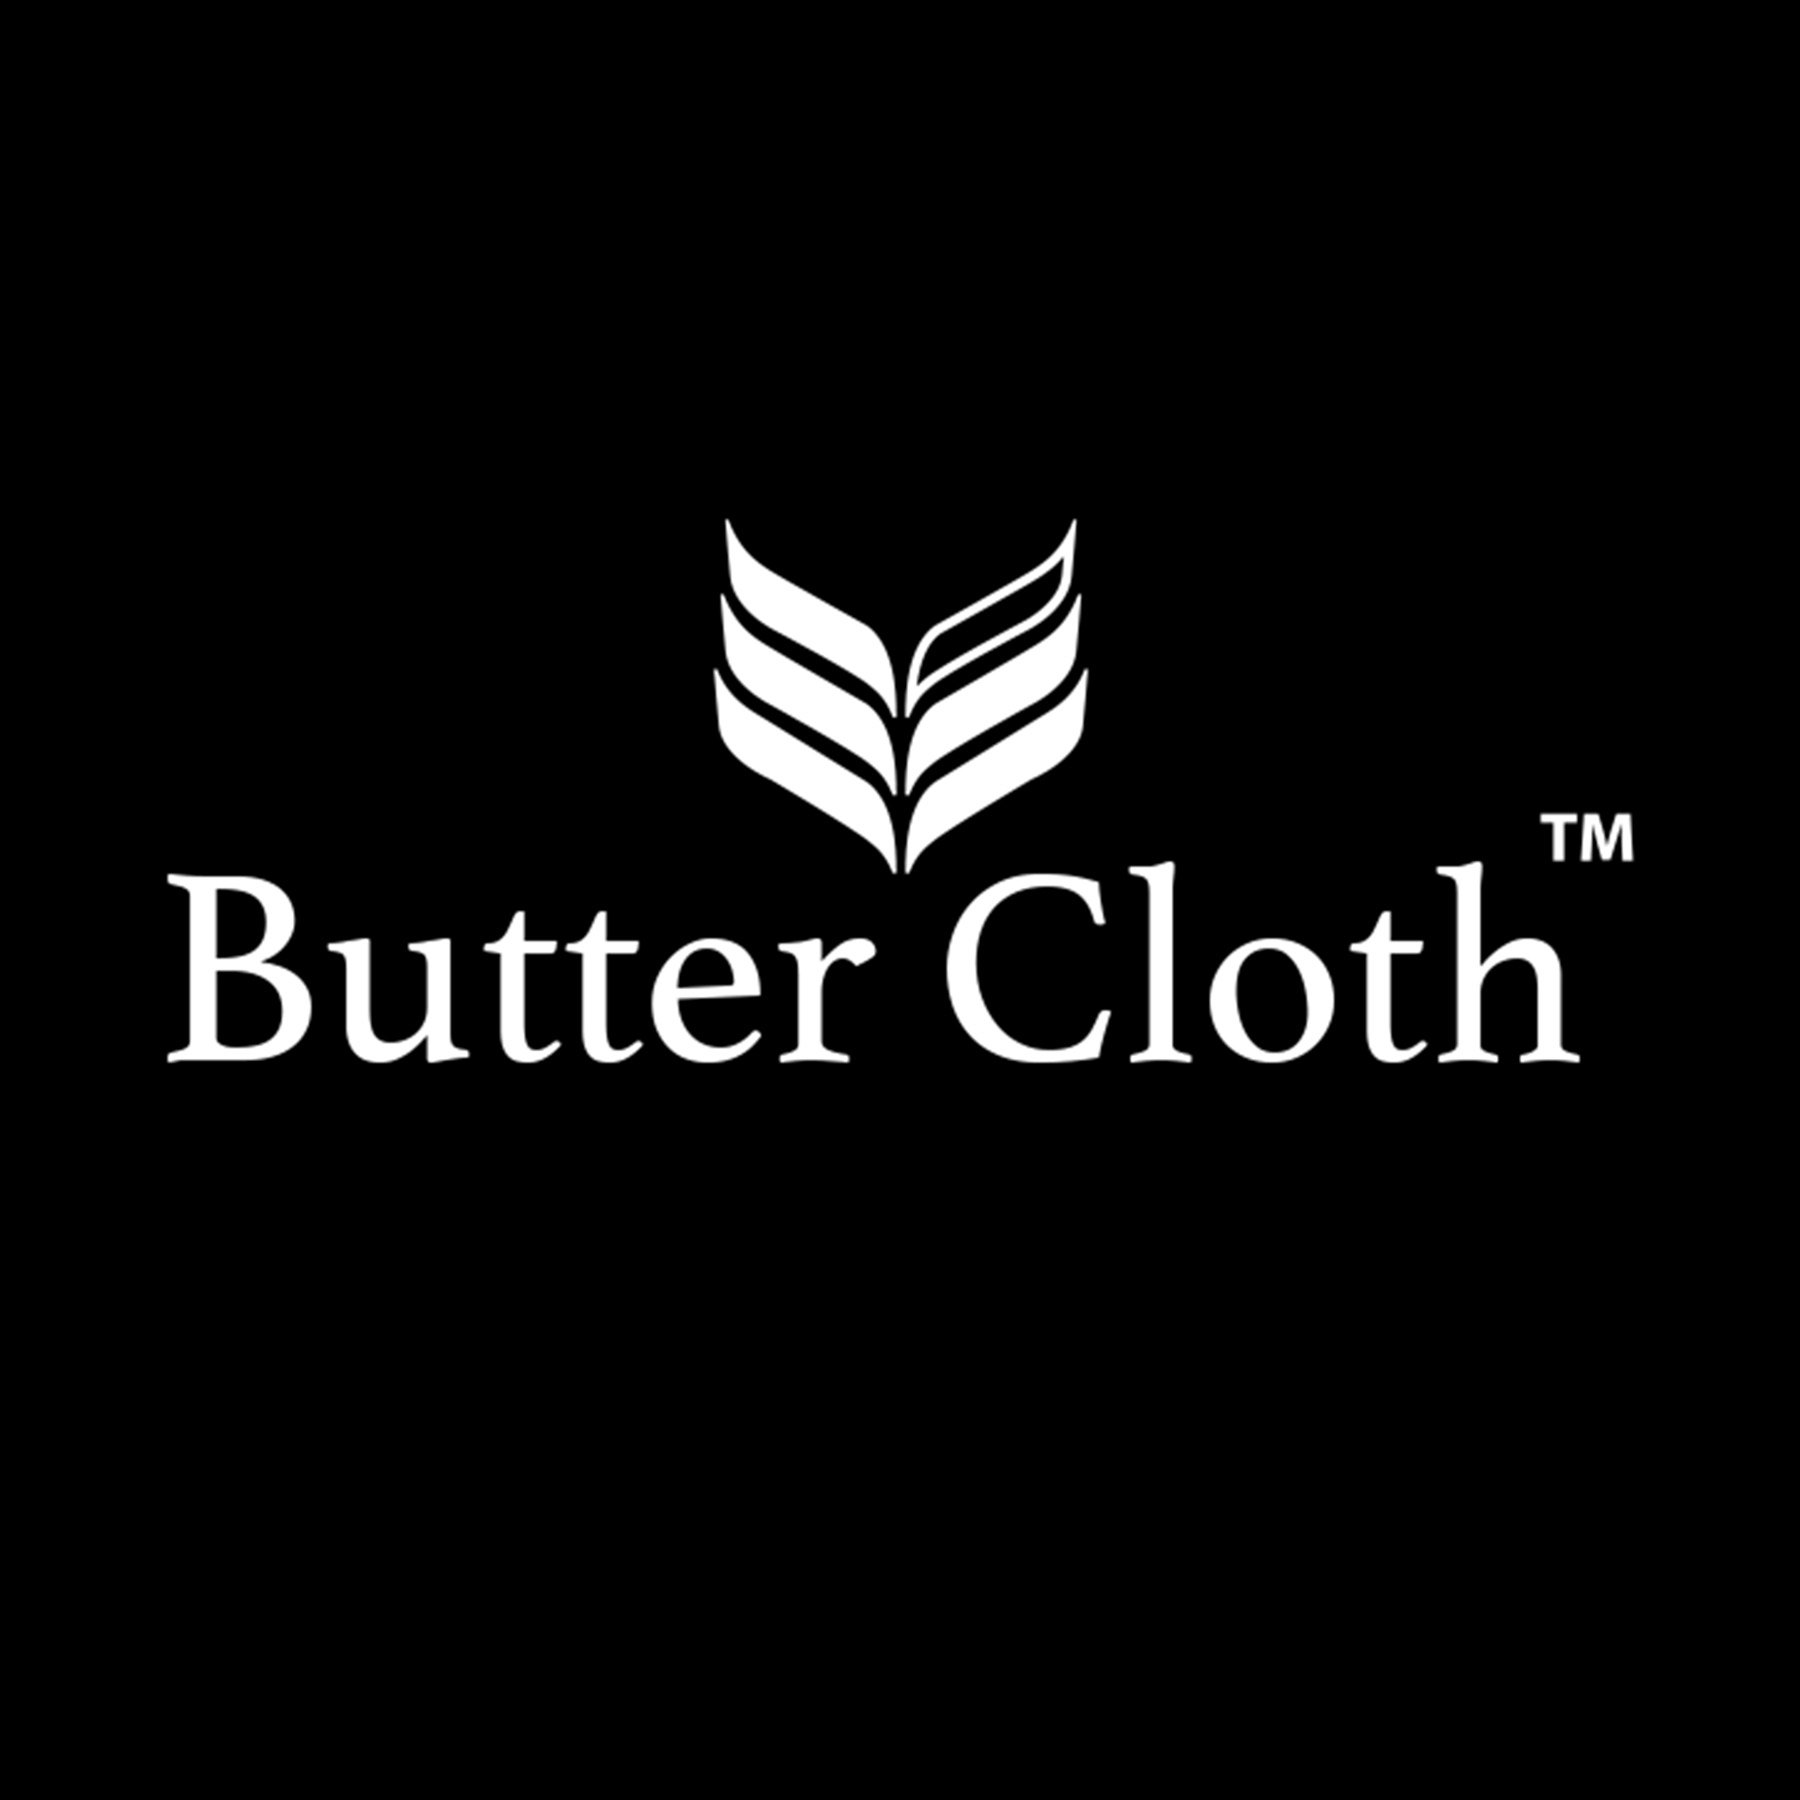 Butter Cloth